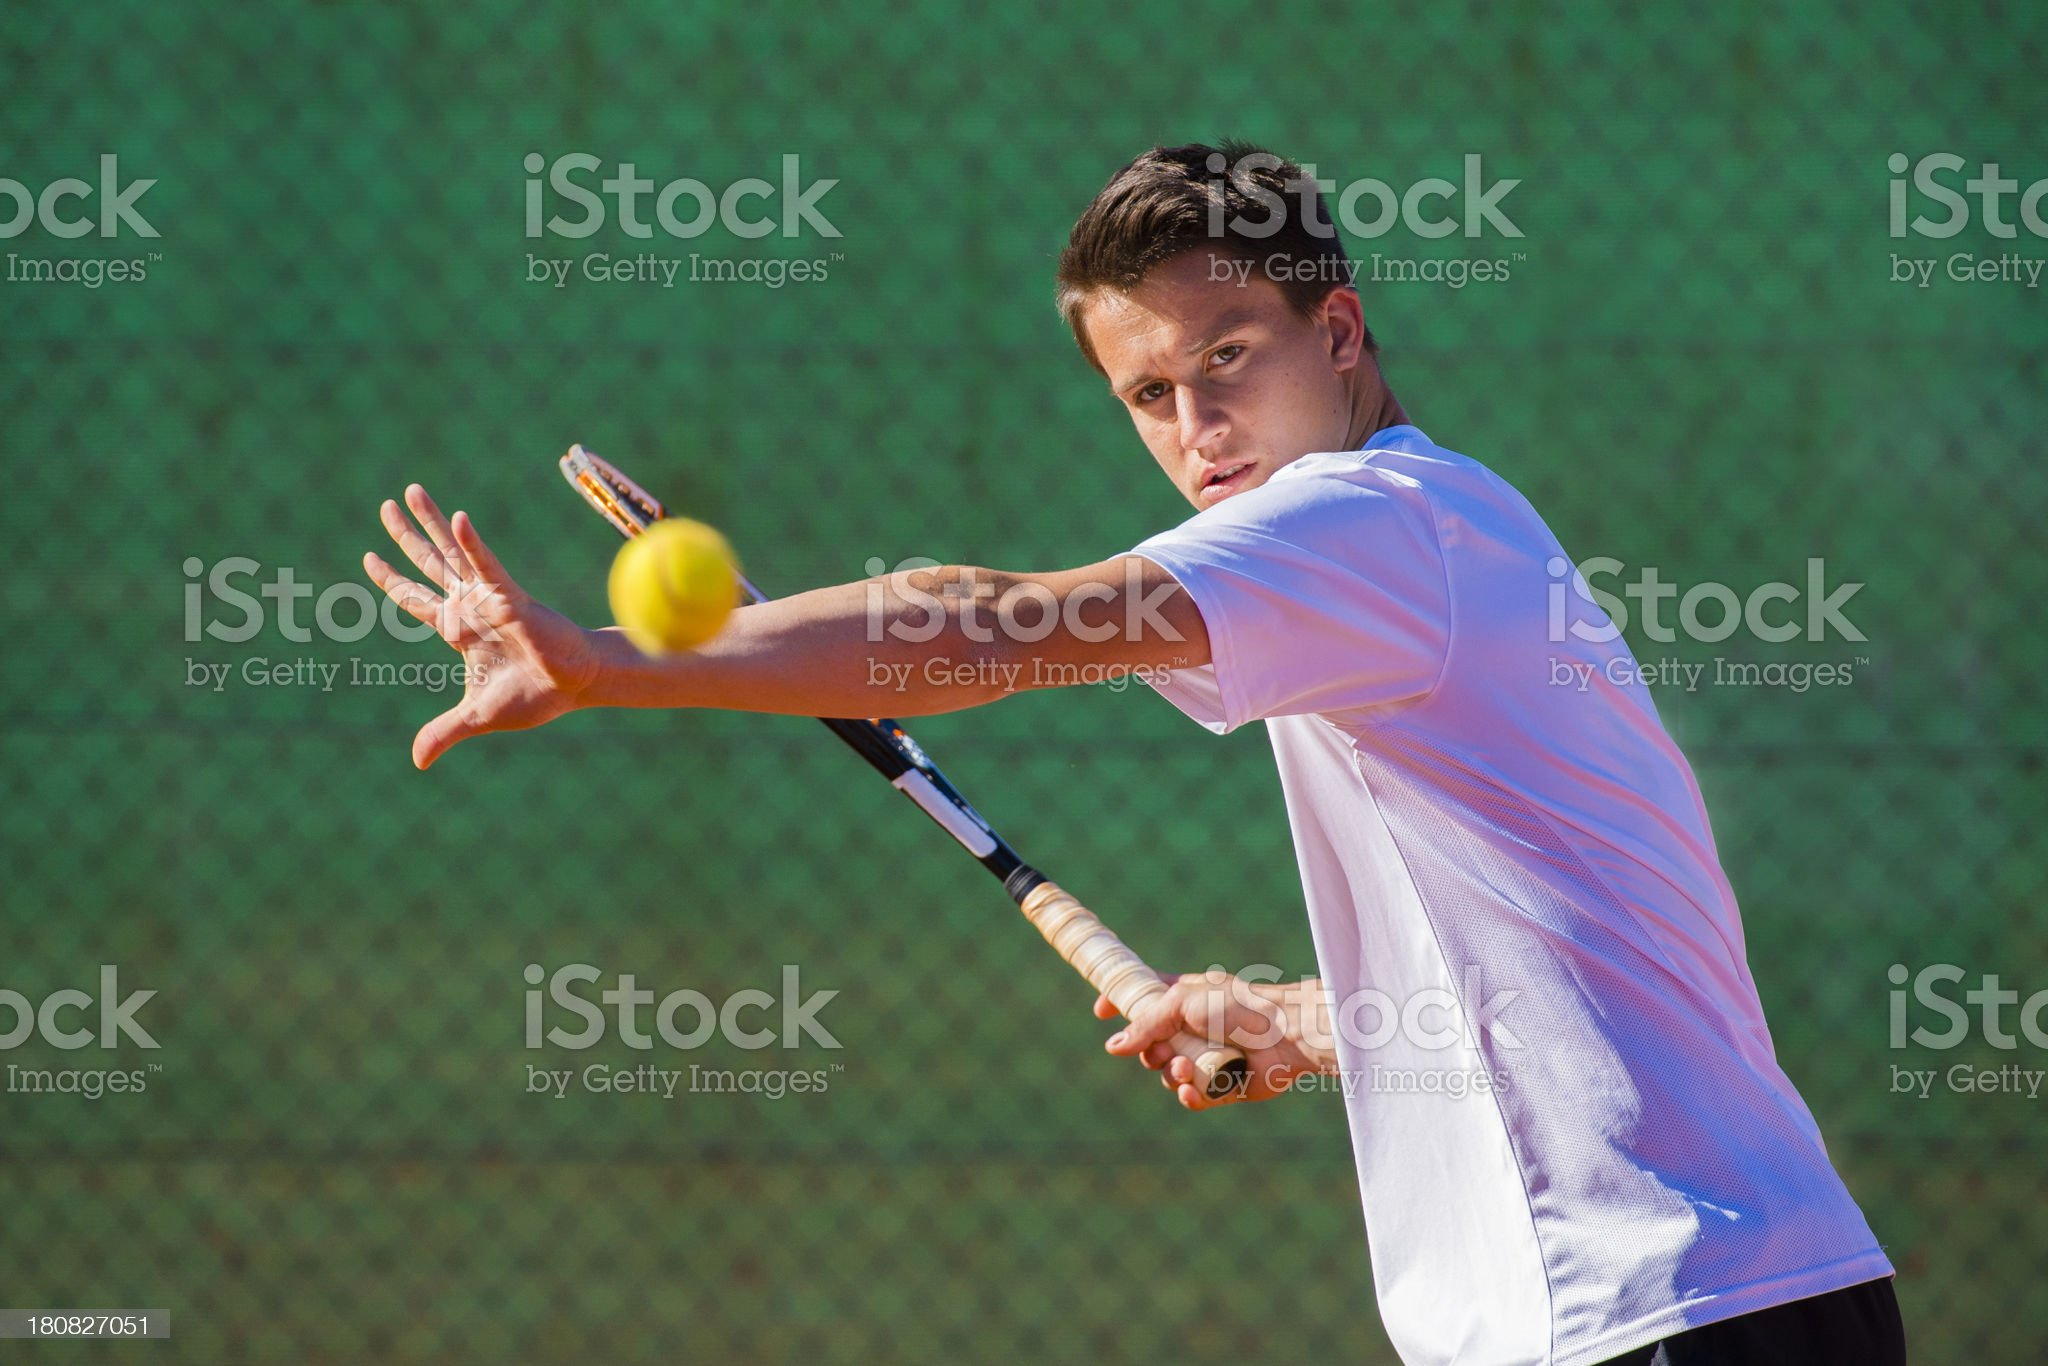 Portrait of Tennis Player Concentrating for Forehand Drive royalty-free stock photo